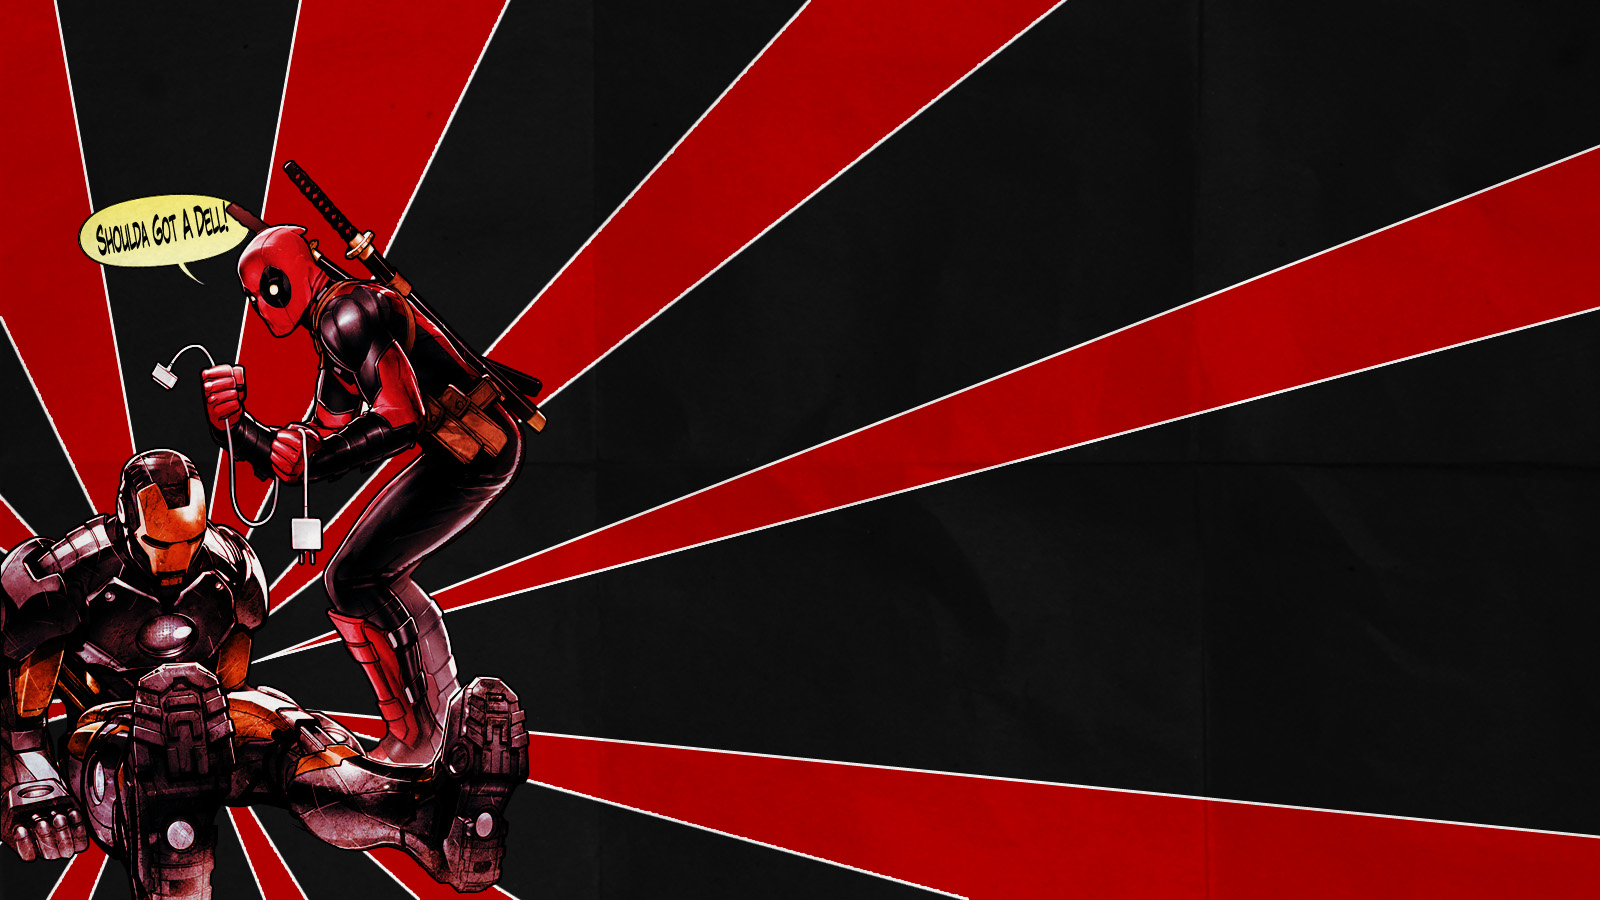 Ironman and Deadpool Wallpaper Ver2 by Franky4FingersX2 on DeviantArt